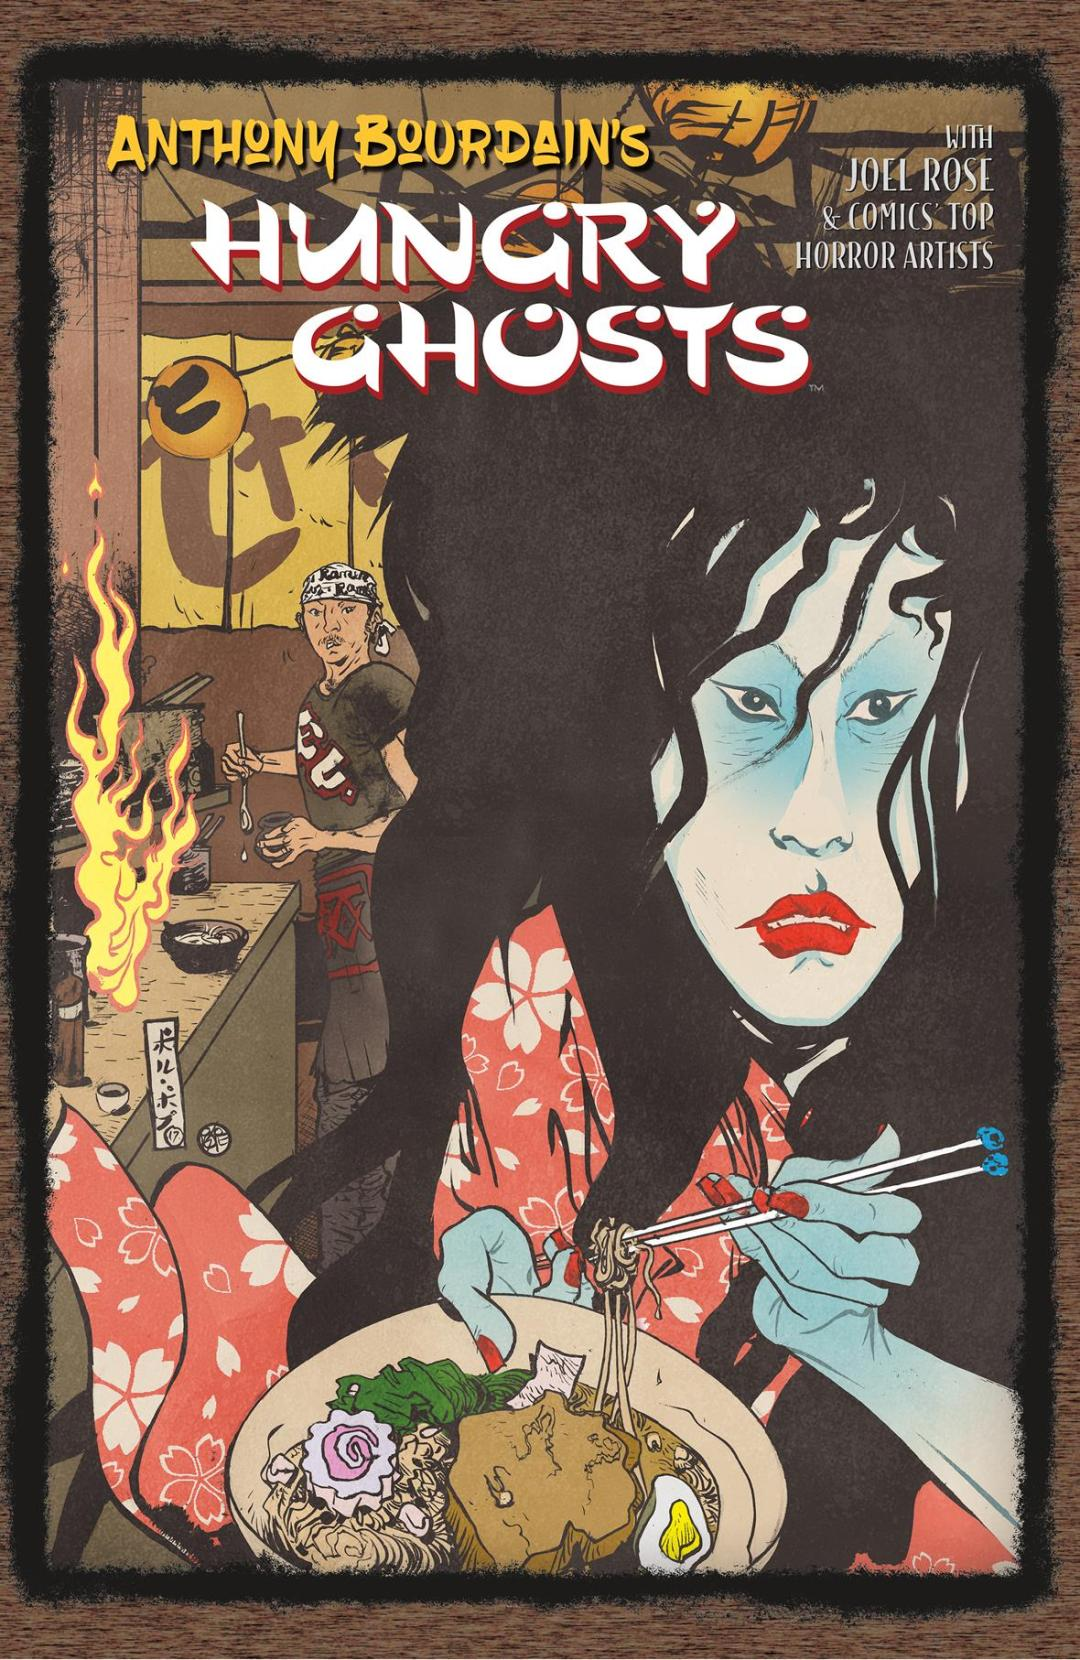 Dark Horse Serves 'Anthony Bourdain's Hungry Ghosts' for Fans to Consume in September 2018